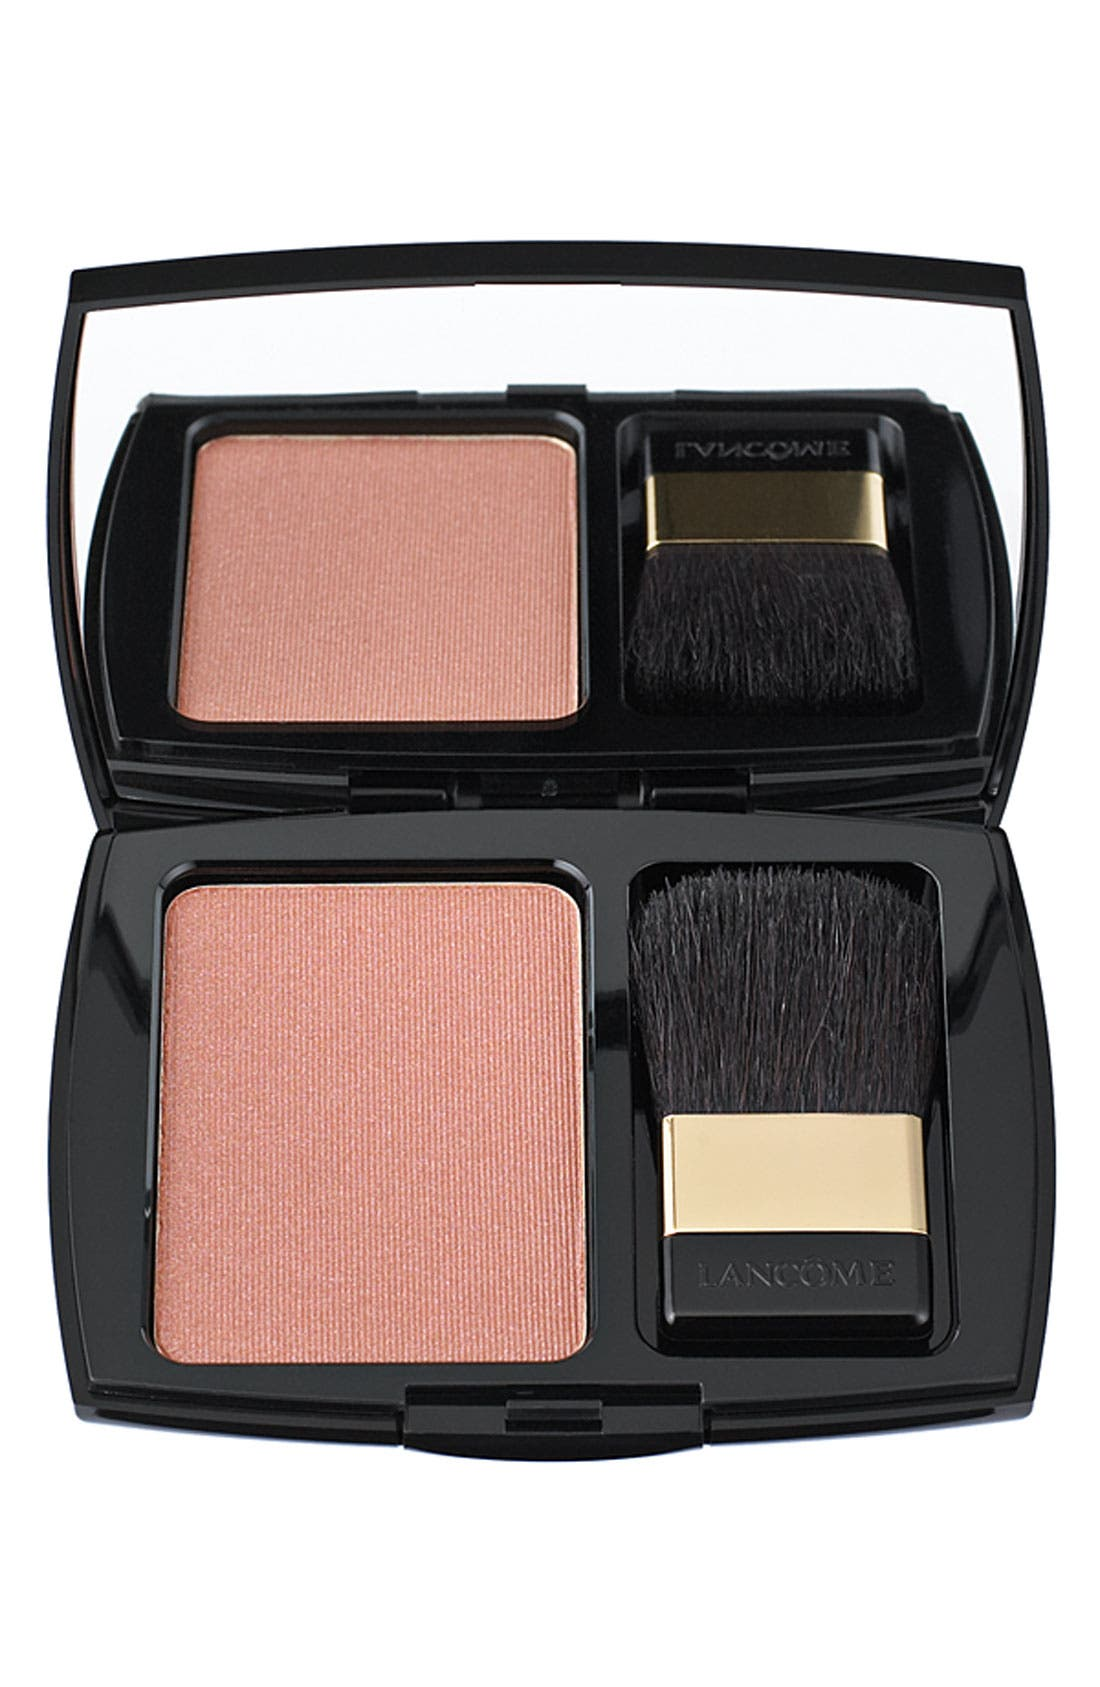 Blush Subtil Shimmer Delicate Oil-Free Powder Blush,                         Main,                         color, SHIMMER MOCHA HAVANA